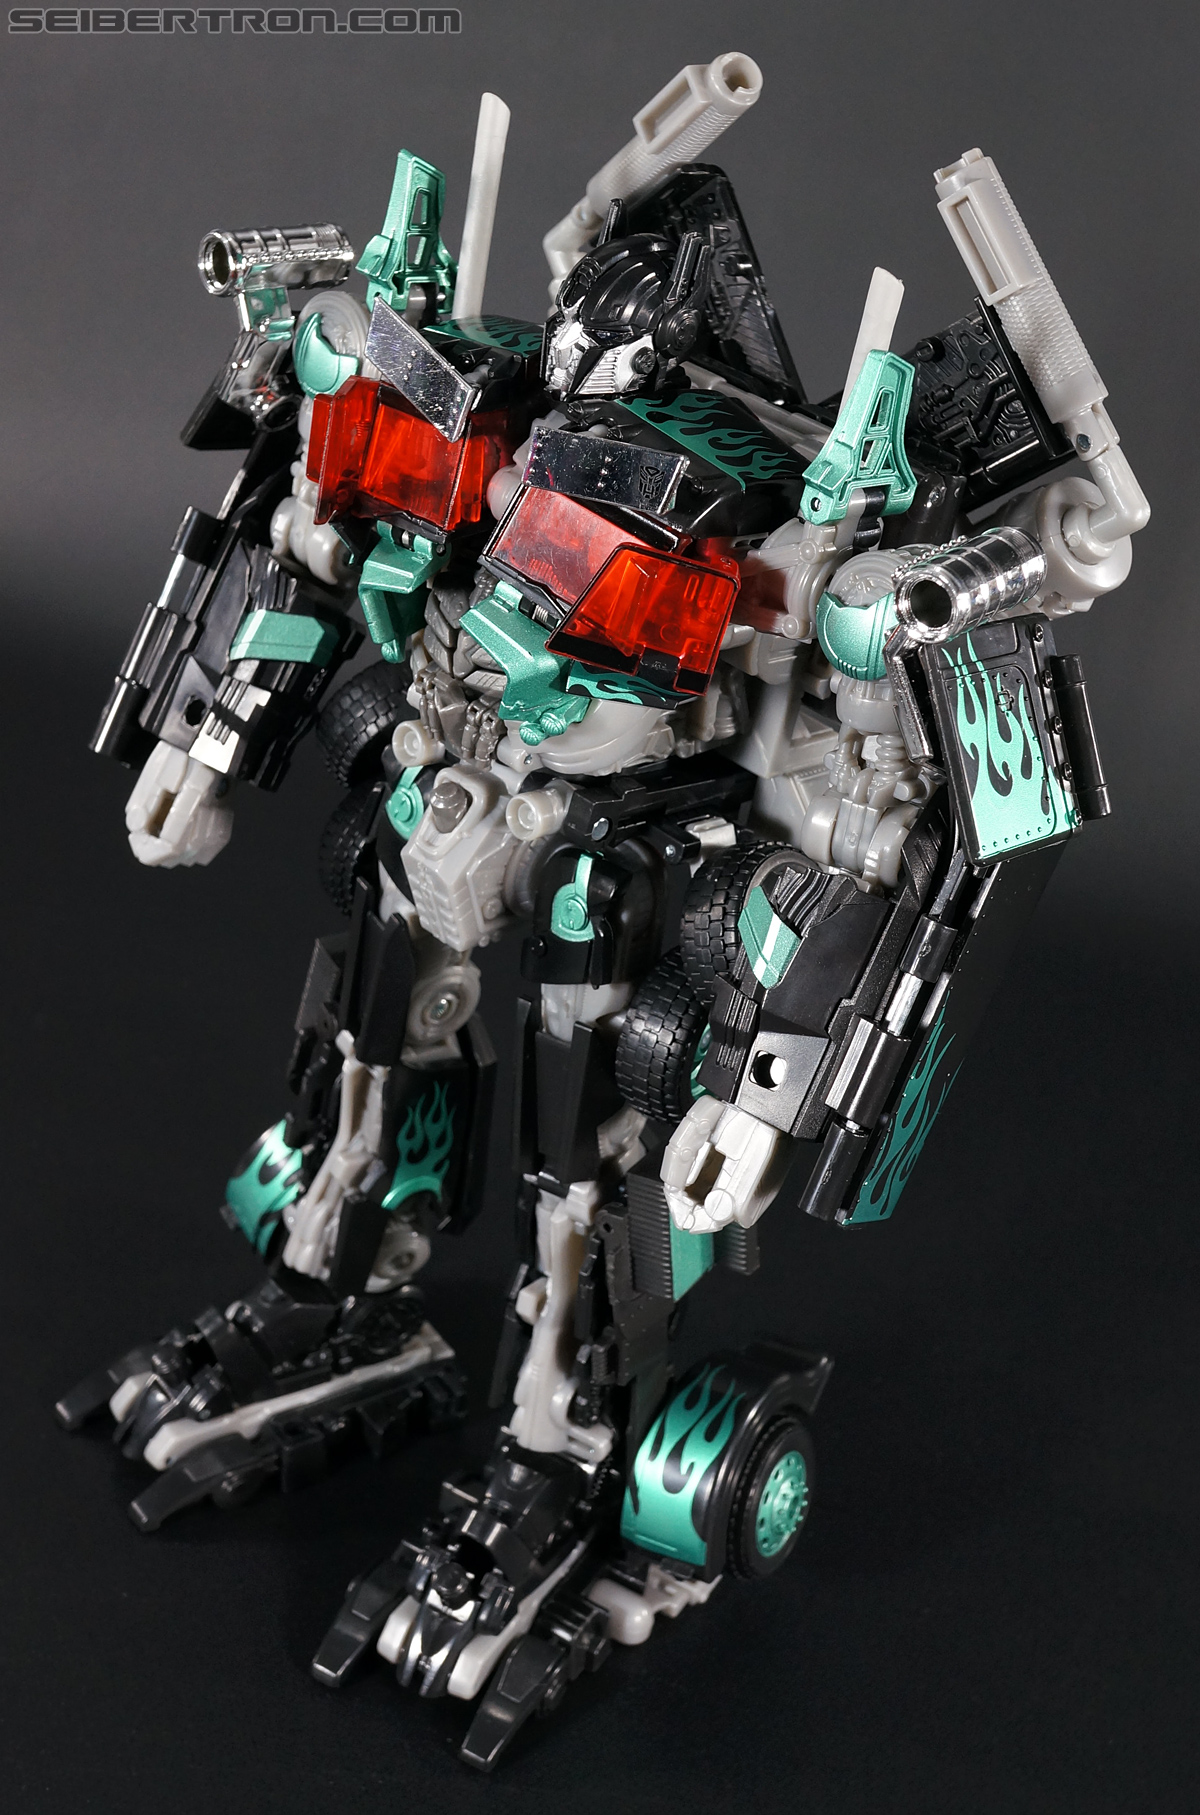 Transformers Dark of the Moon Jetwing Optimus Prime (Black Version) (Image #114 of 279)